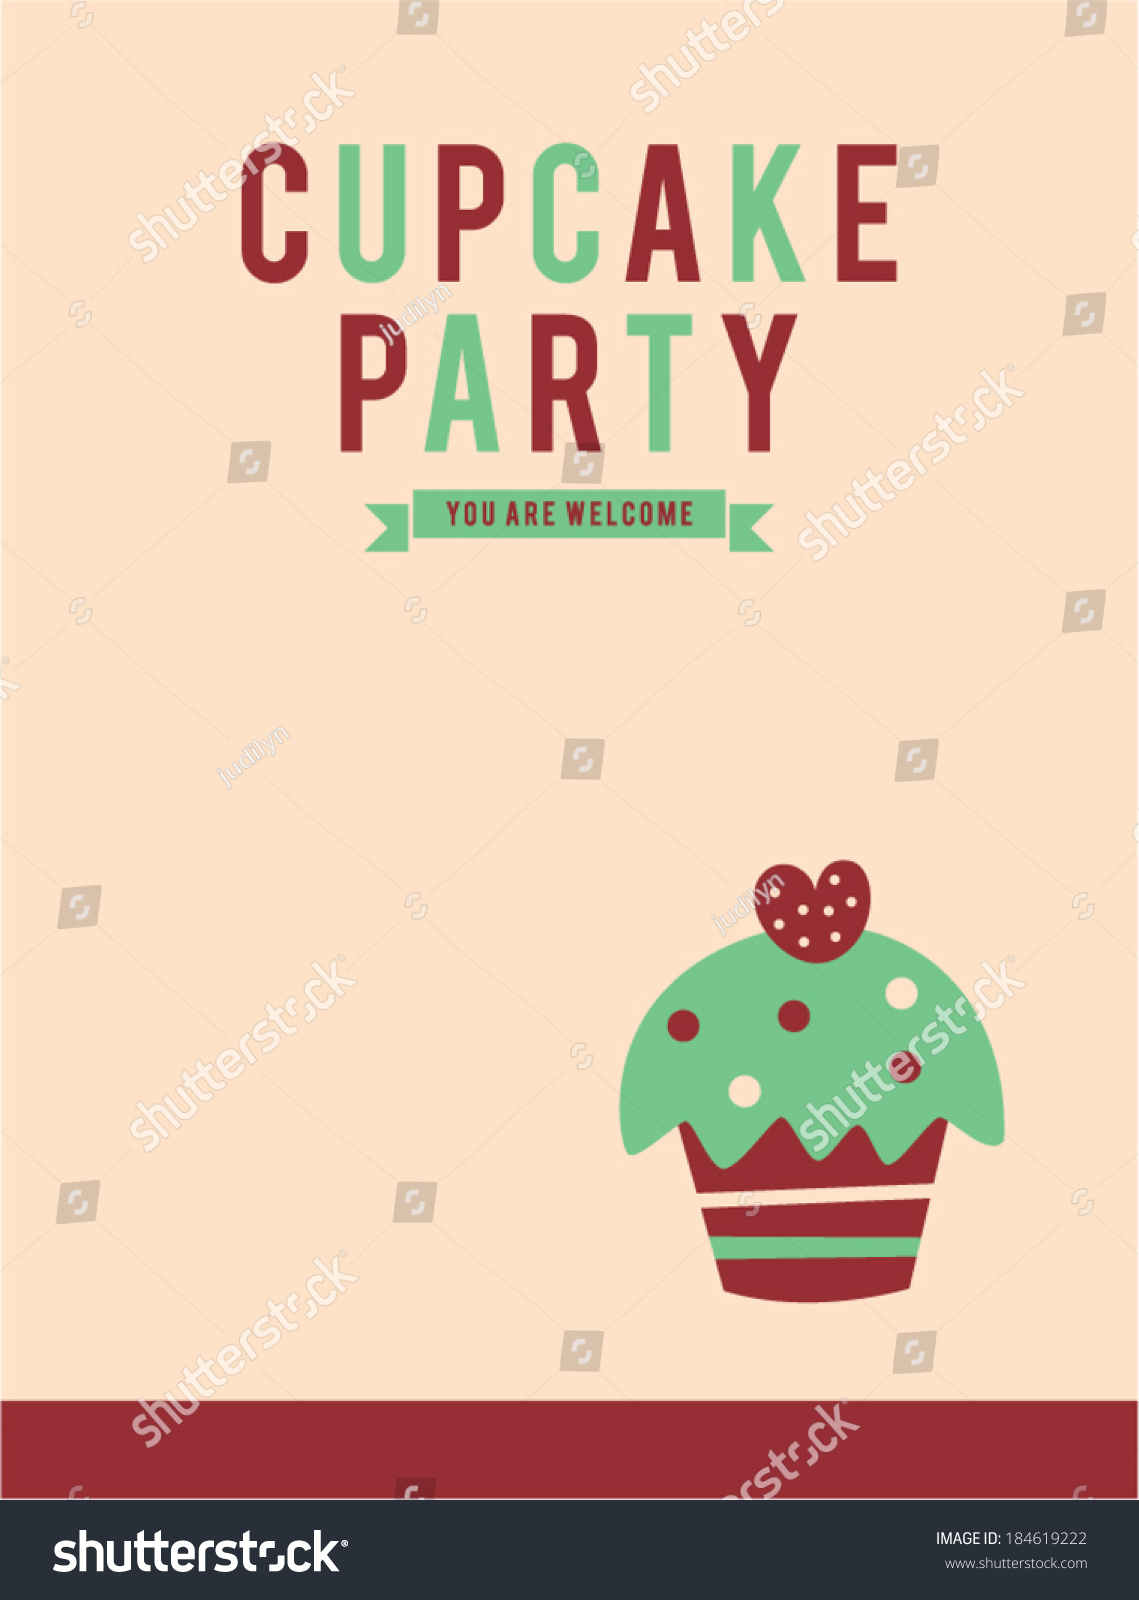 Retro Cupcake Party Invitation Card Stock Vector 184619222 ...